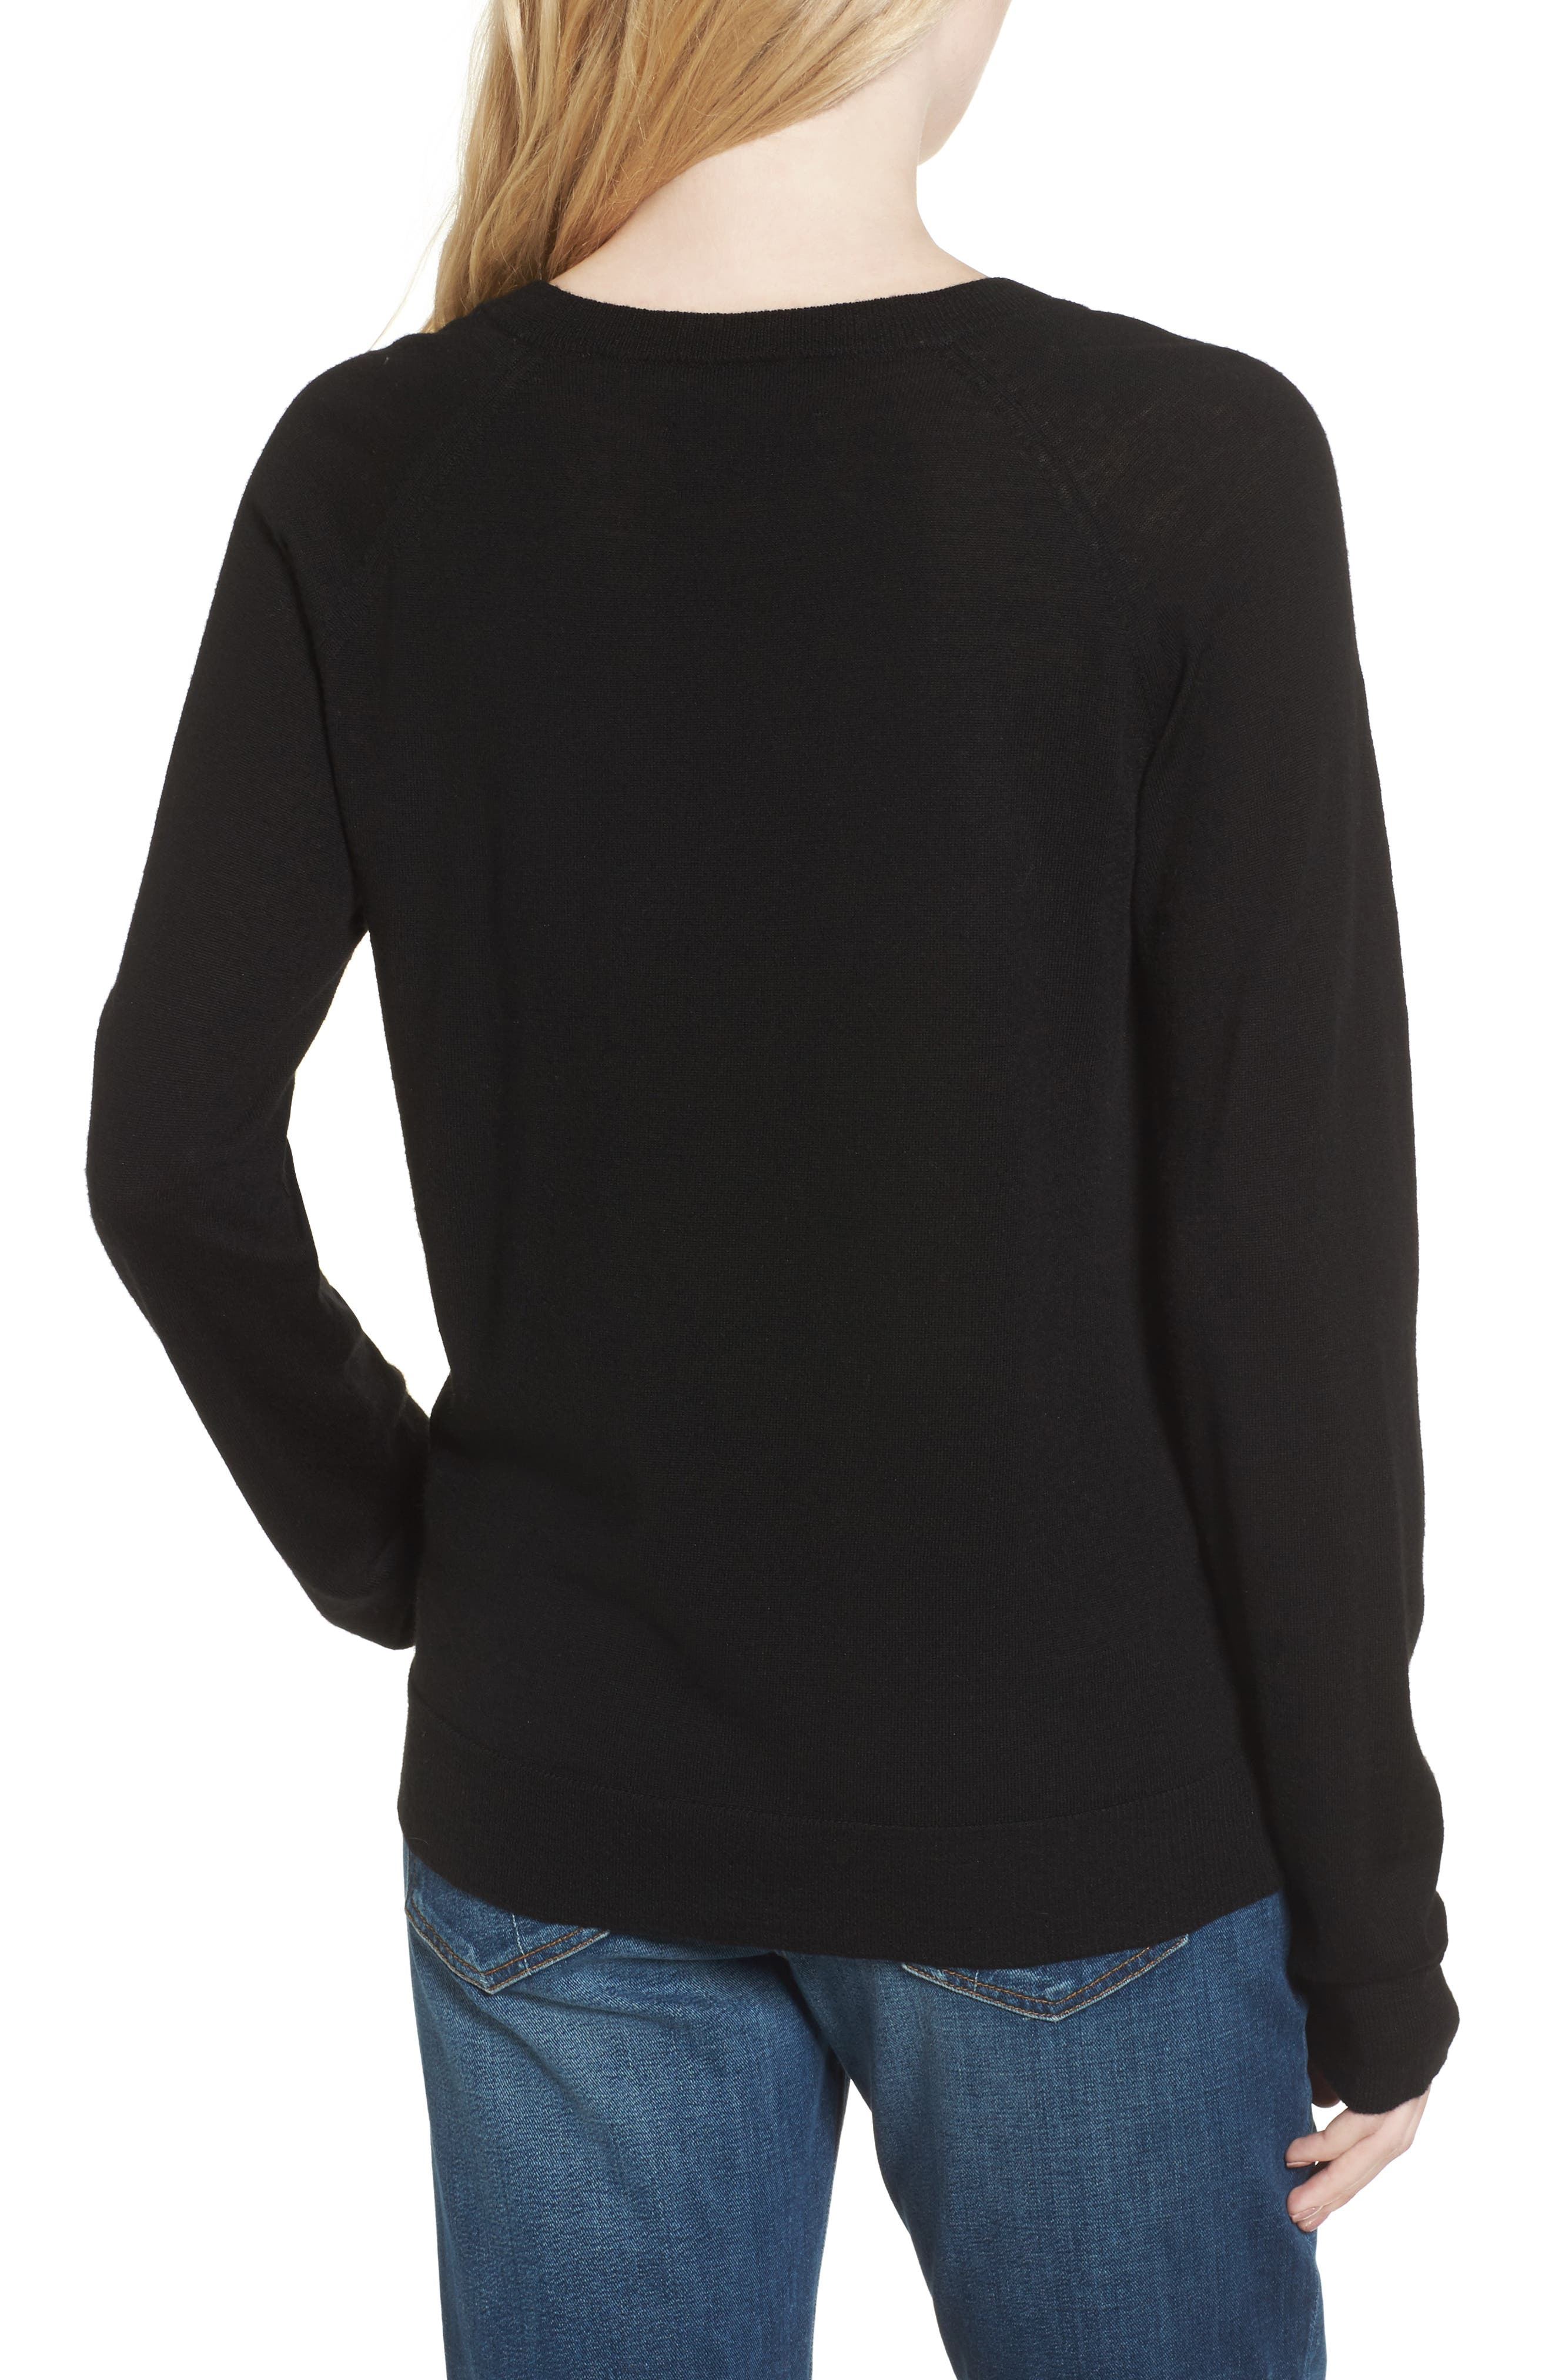 Reglis Merino Wool Sweater,                             Alternate thumbnail 2, color,                             Noir